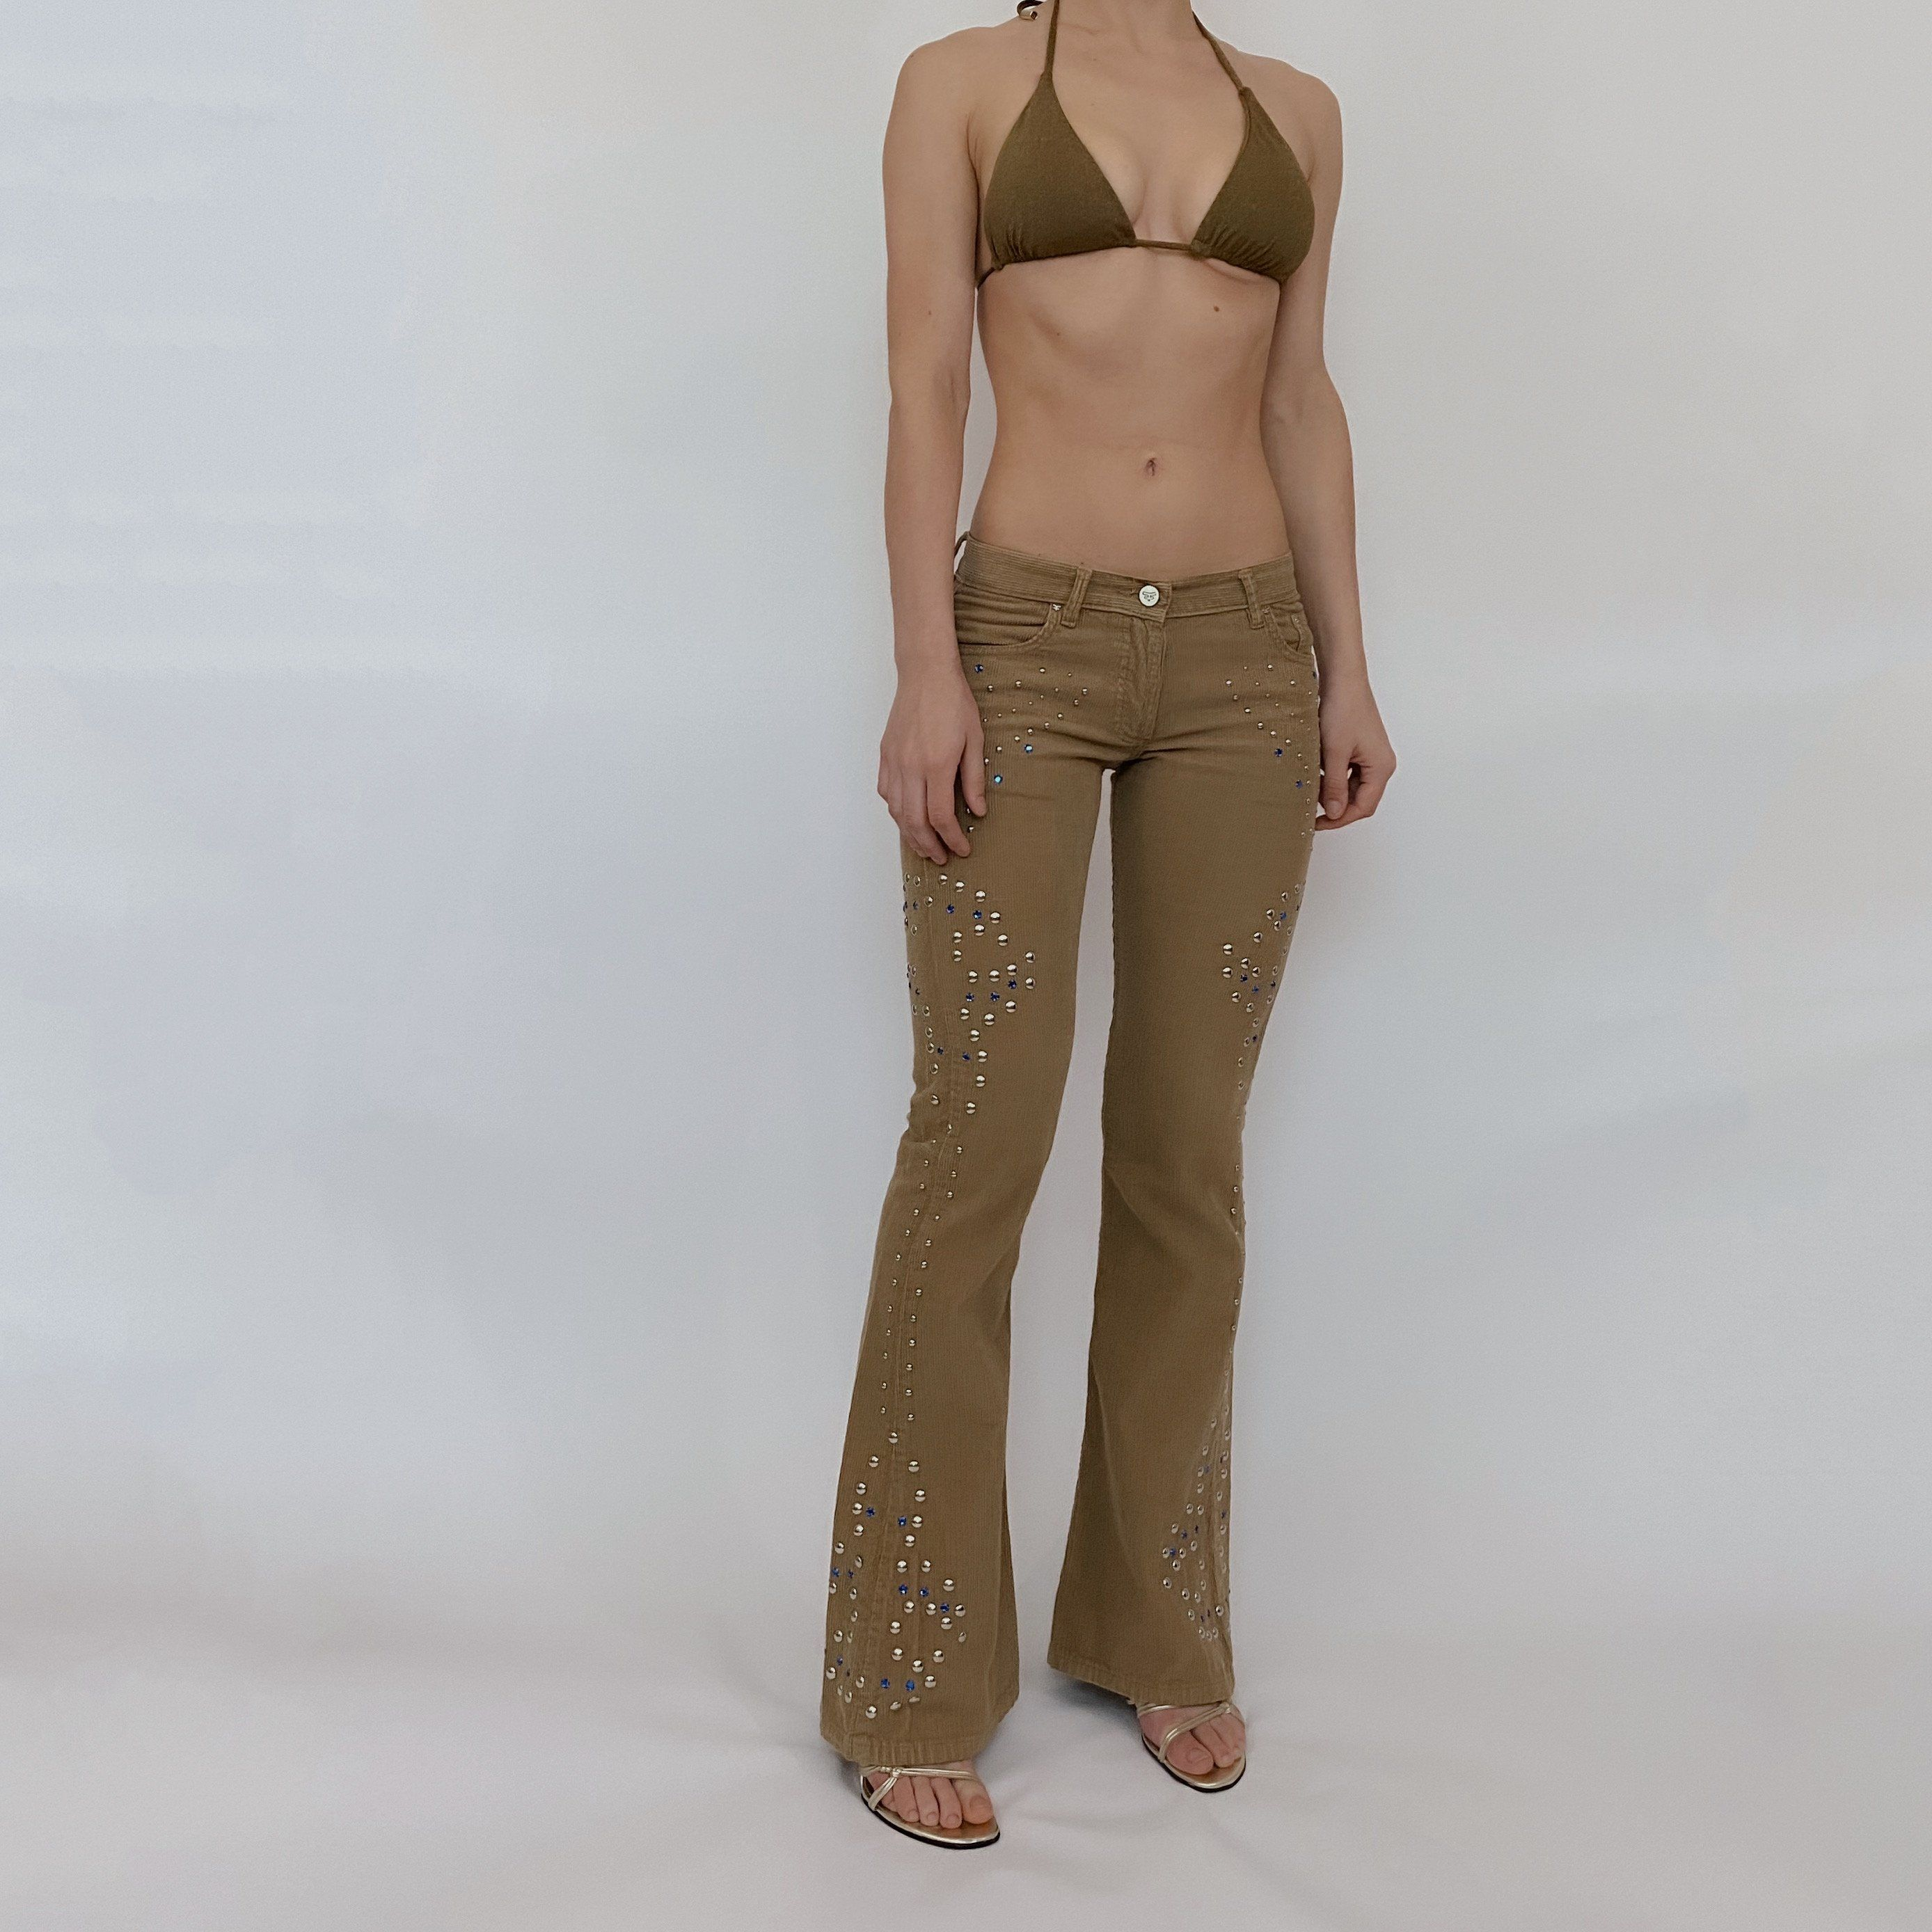 Y2k Studded Corduroy Pants Size 0 In 2021 Fashion Inspo Outfits 2000s Fashion Outfits Low Rise Jeans Outfit